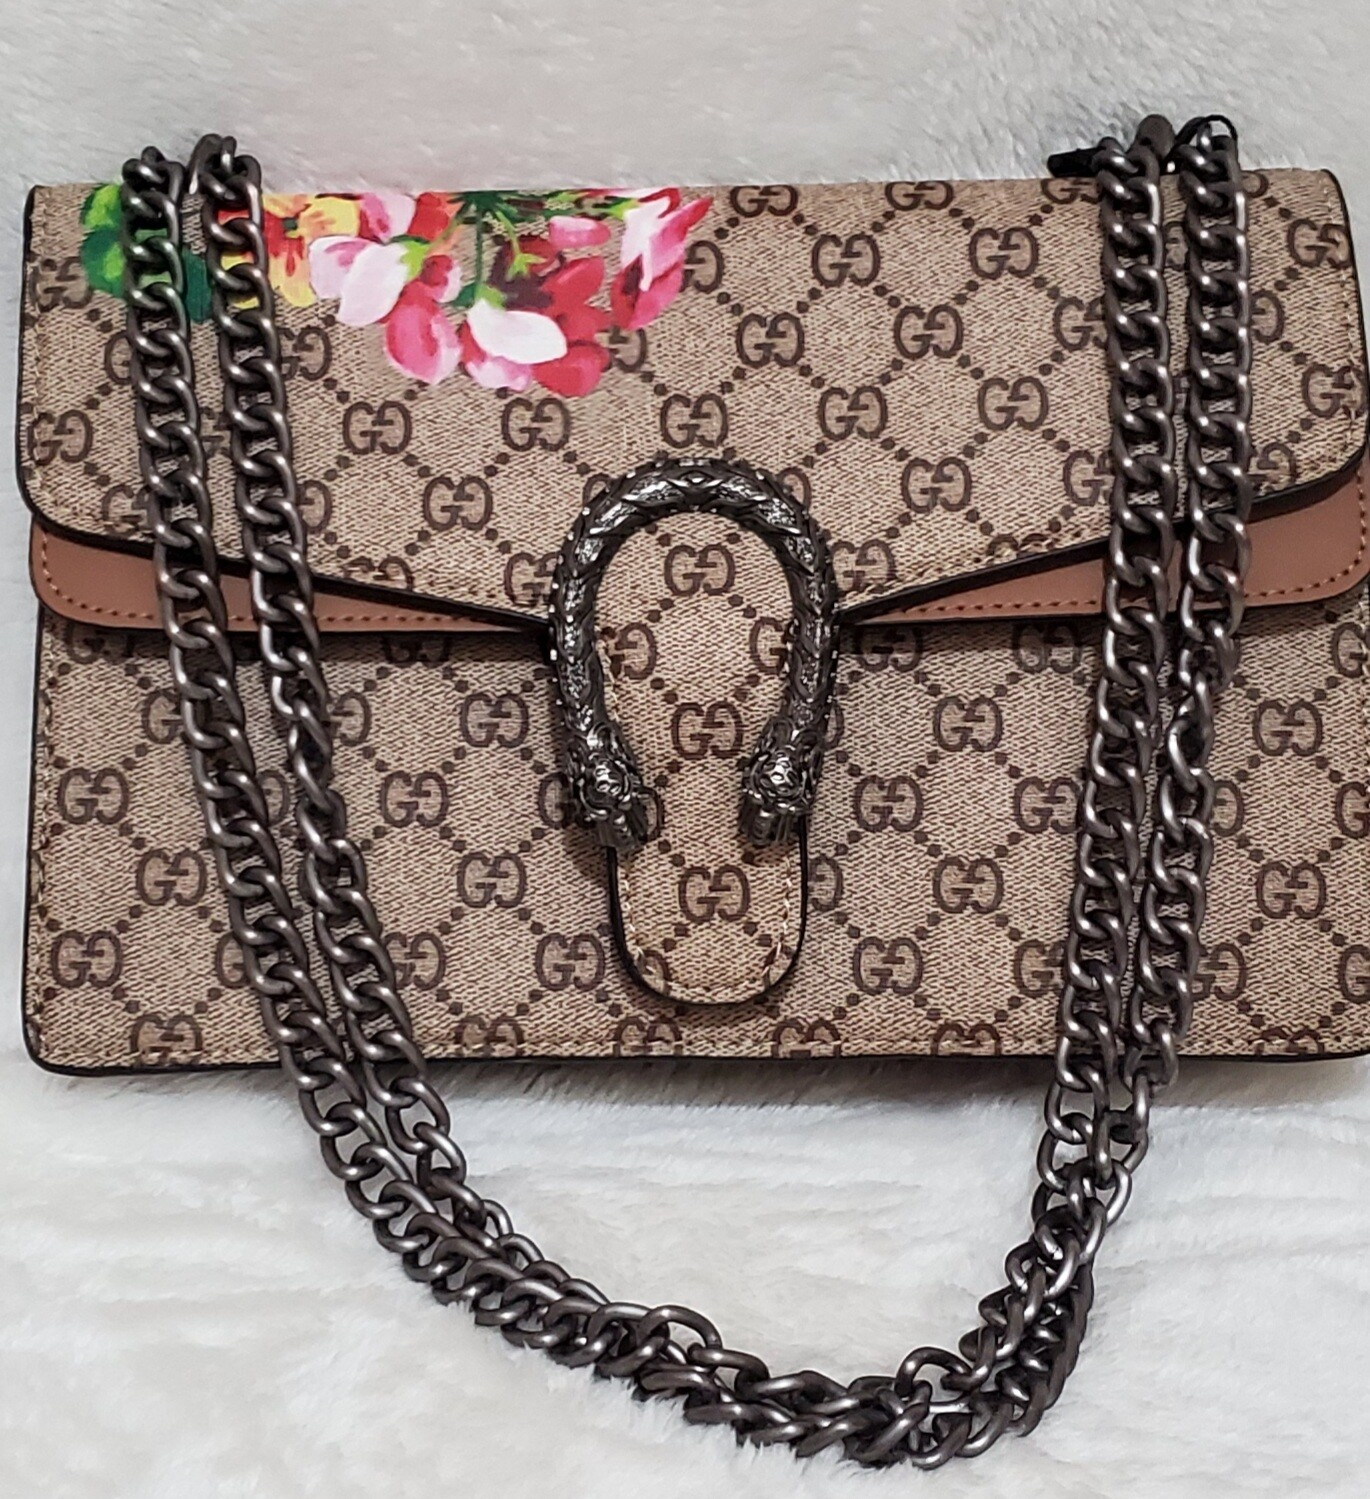 GG Bloom crossbody